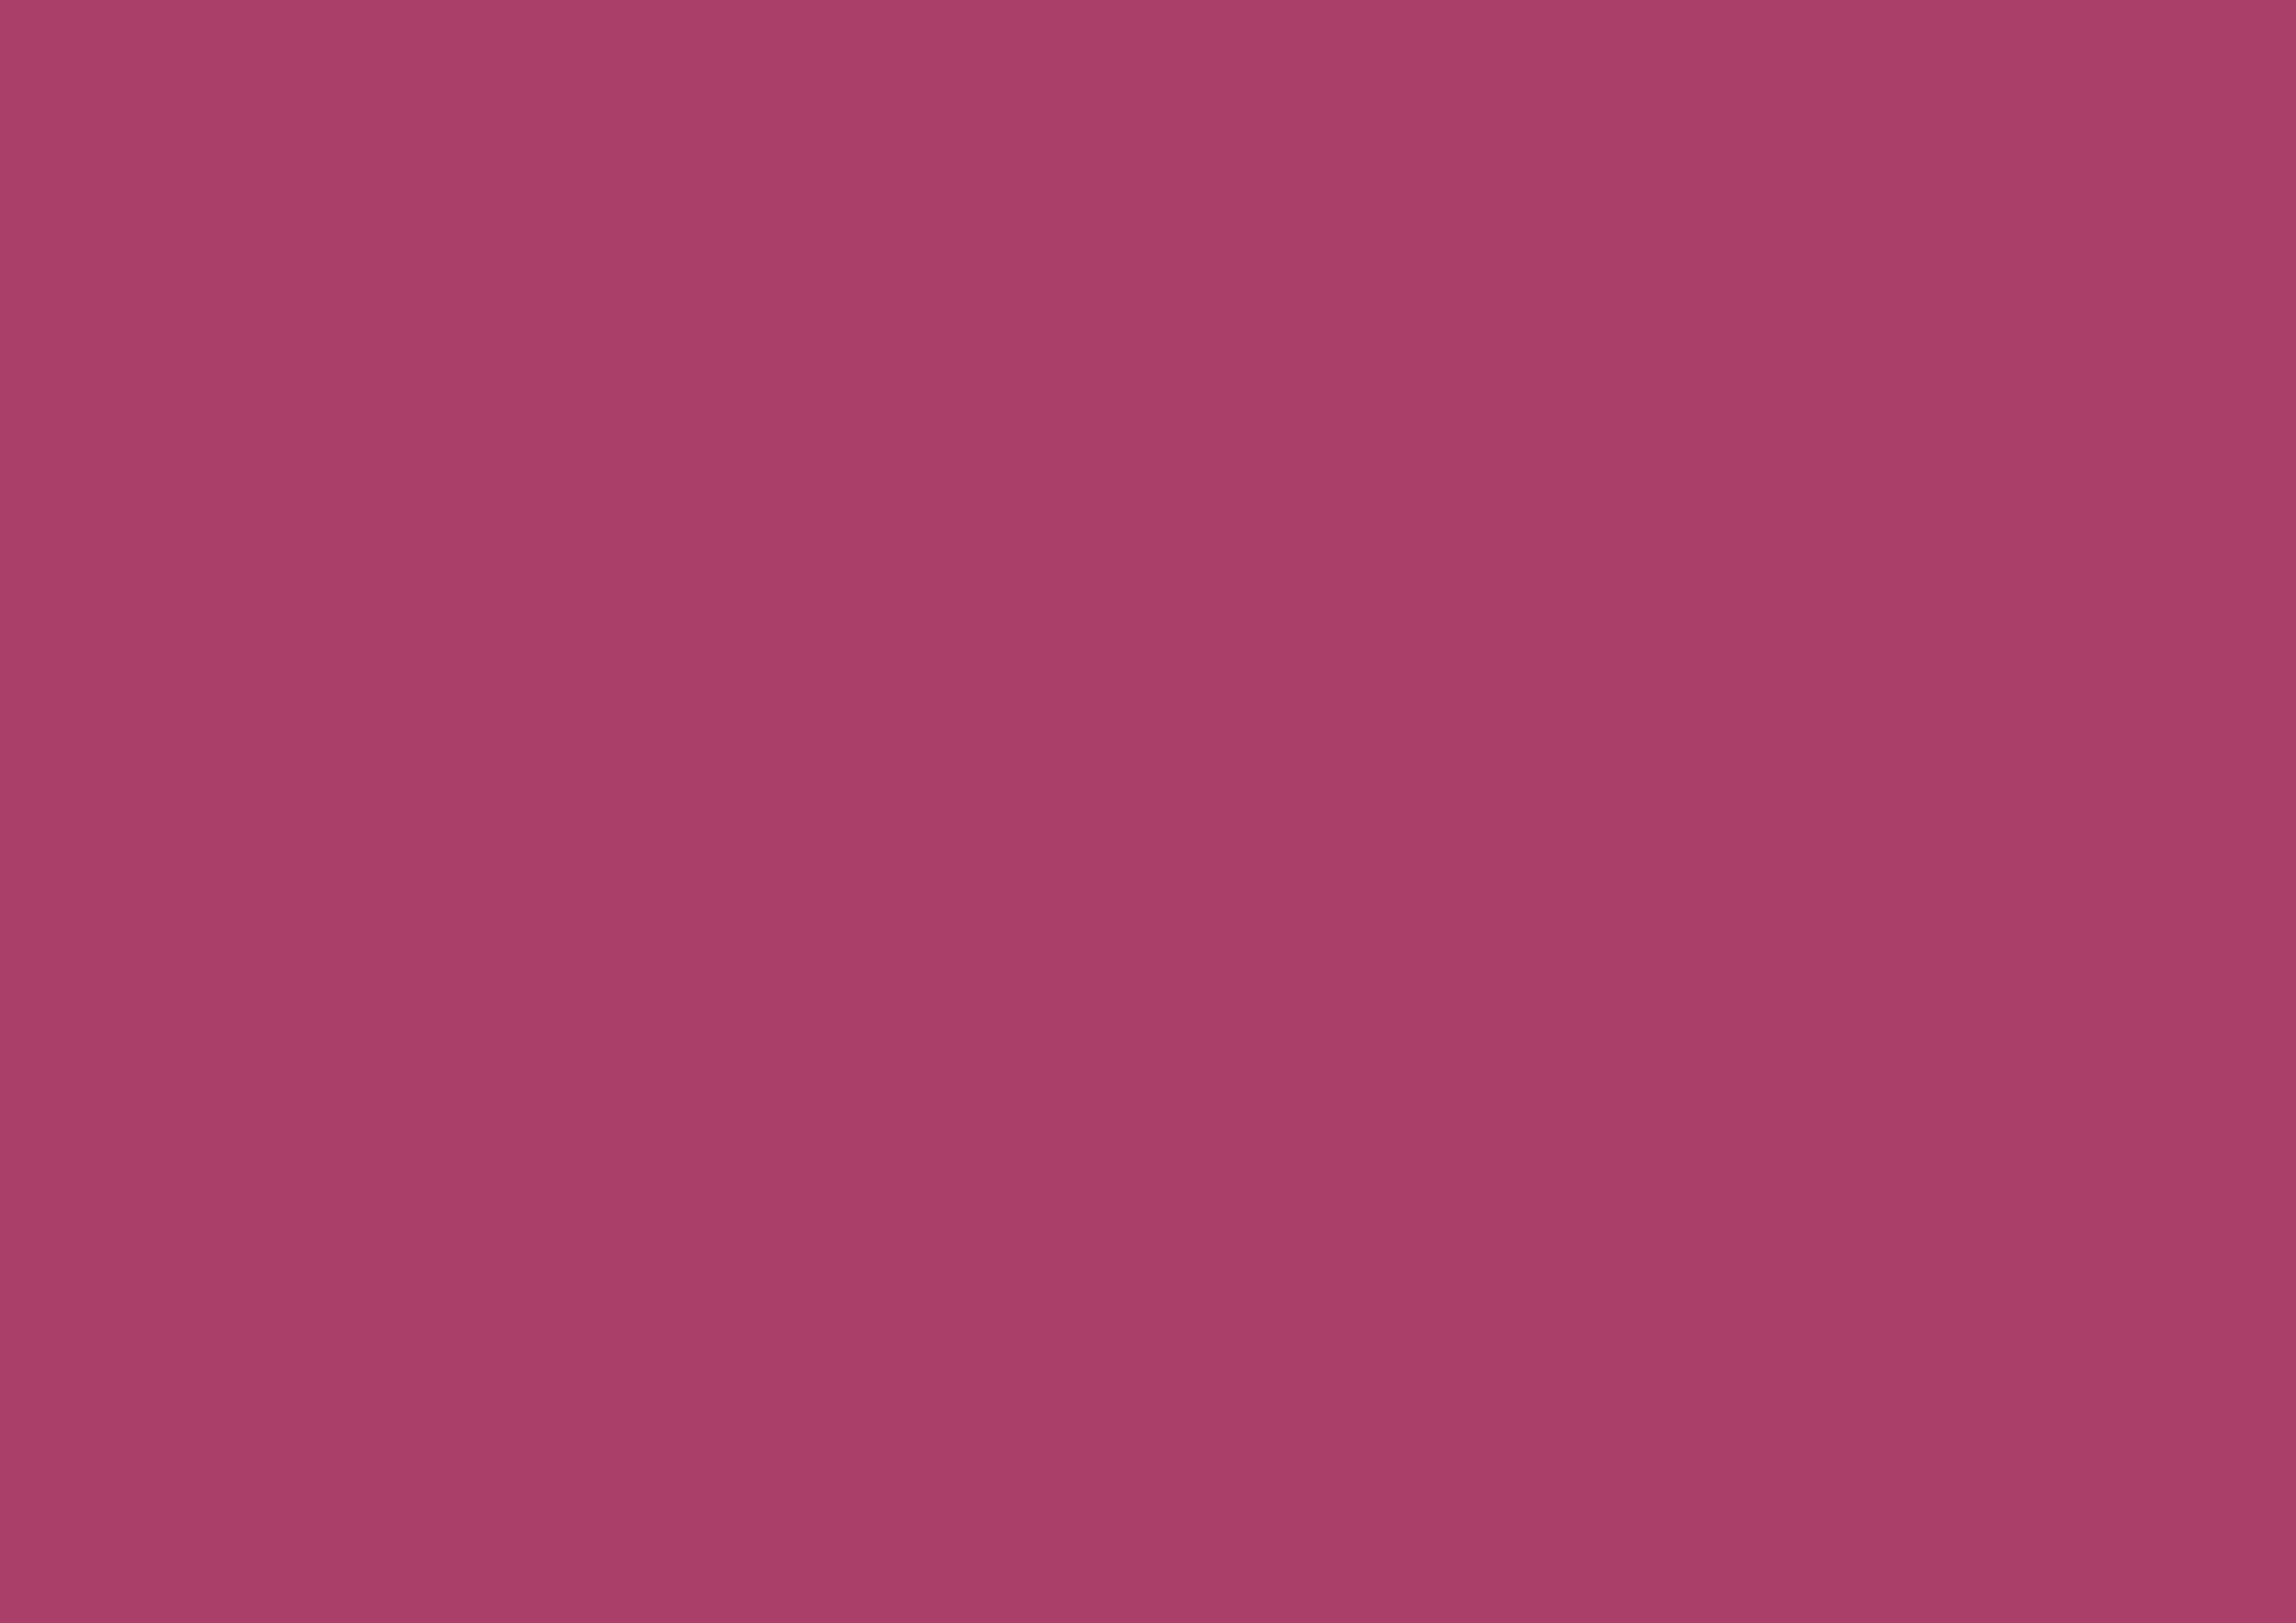 3508x2480 Medium Ruby Solid Color Background